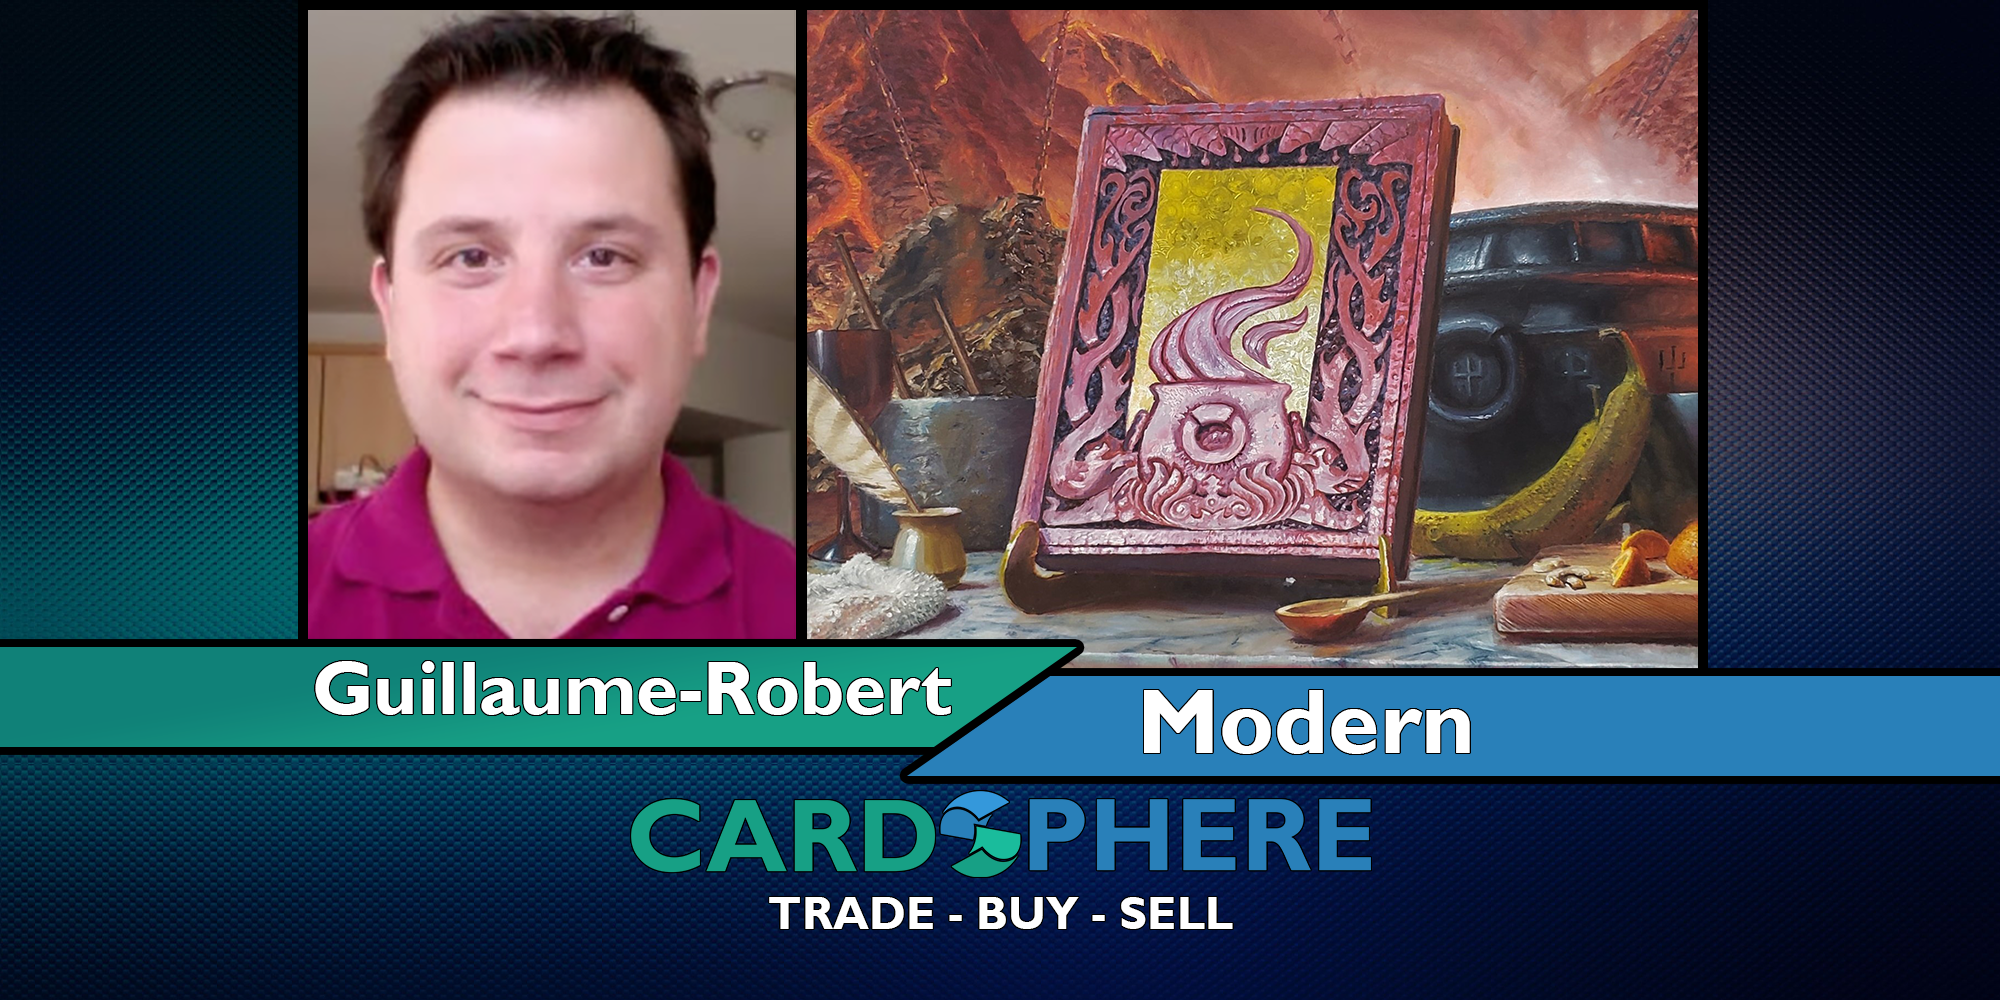 Modern is far from solved and I love it!